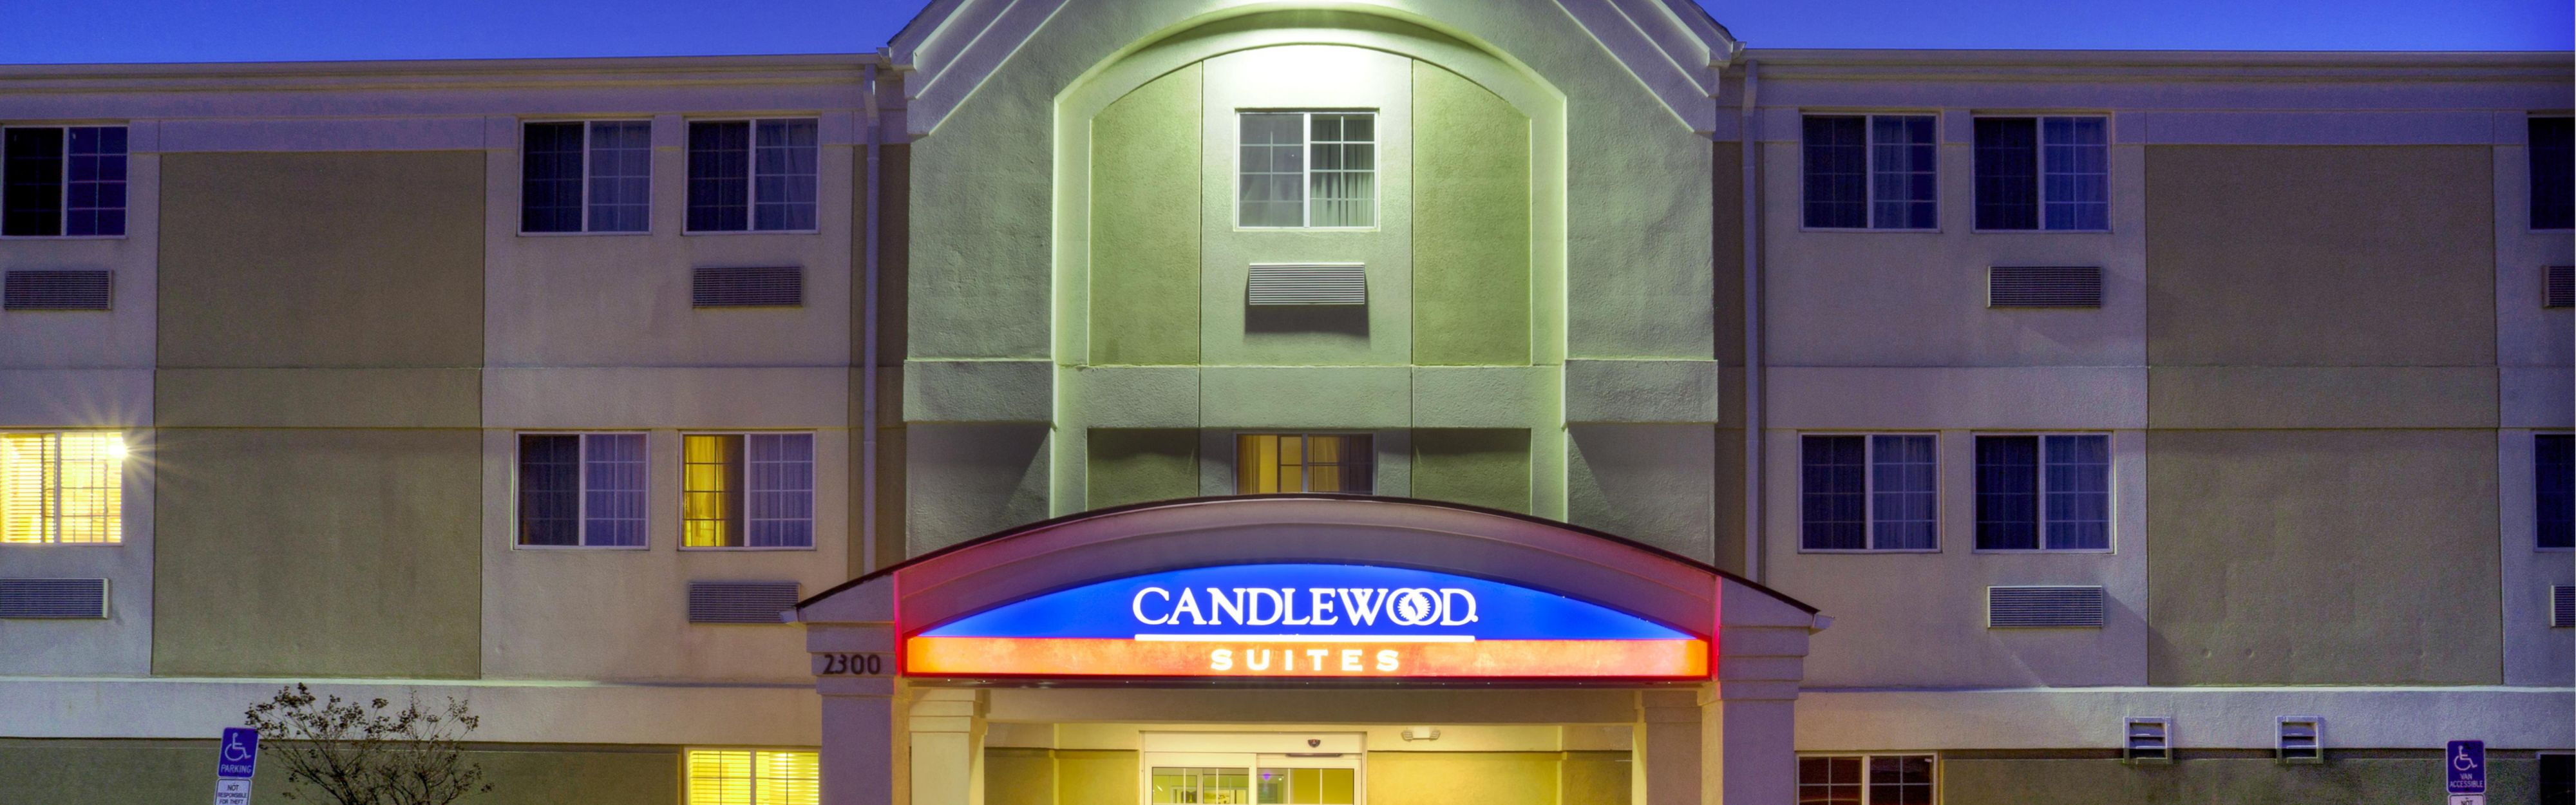 Candlewood Suites Killeen - Fort Hood Area image 0